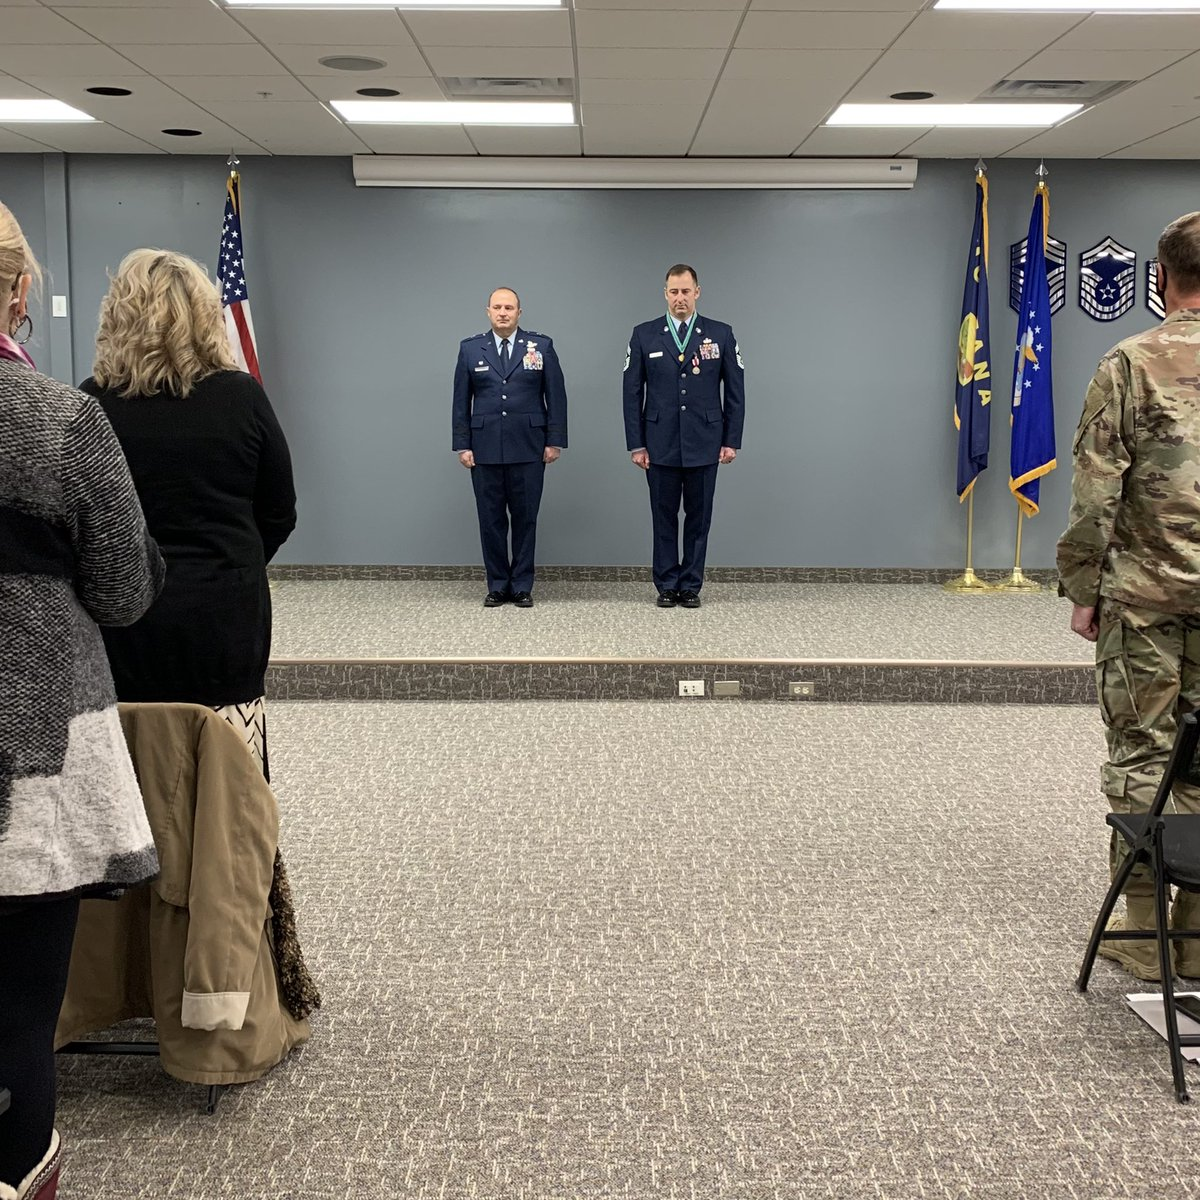 Montana's State Command Chief Master Sgt. Doug Otto retired over February drill weekend after 30 years of service to the Air Force. His loved ones and friends gathered to present him with gifts commemorating his service to country and state. Thank you for your service!